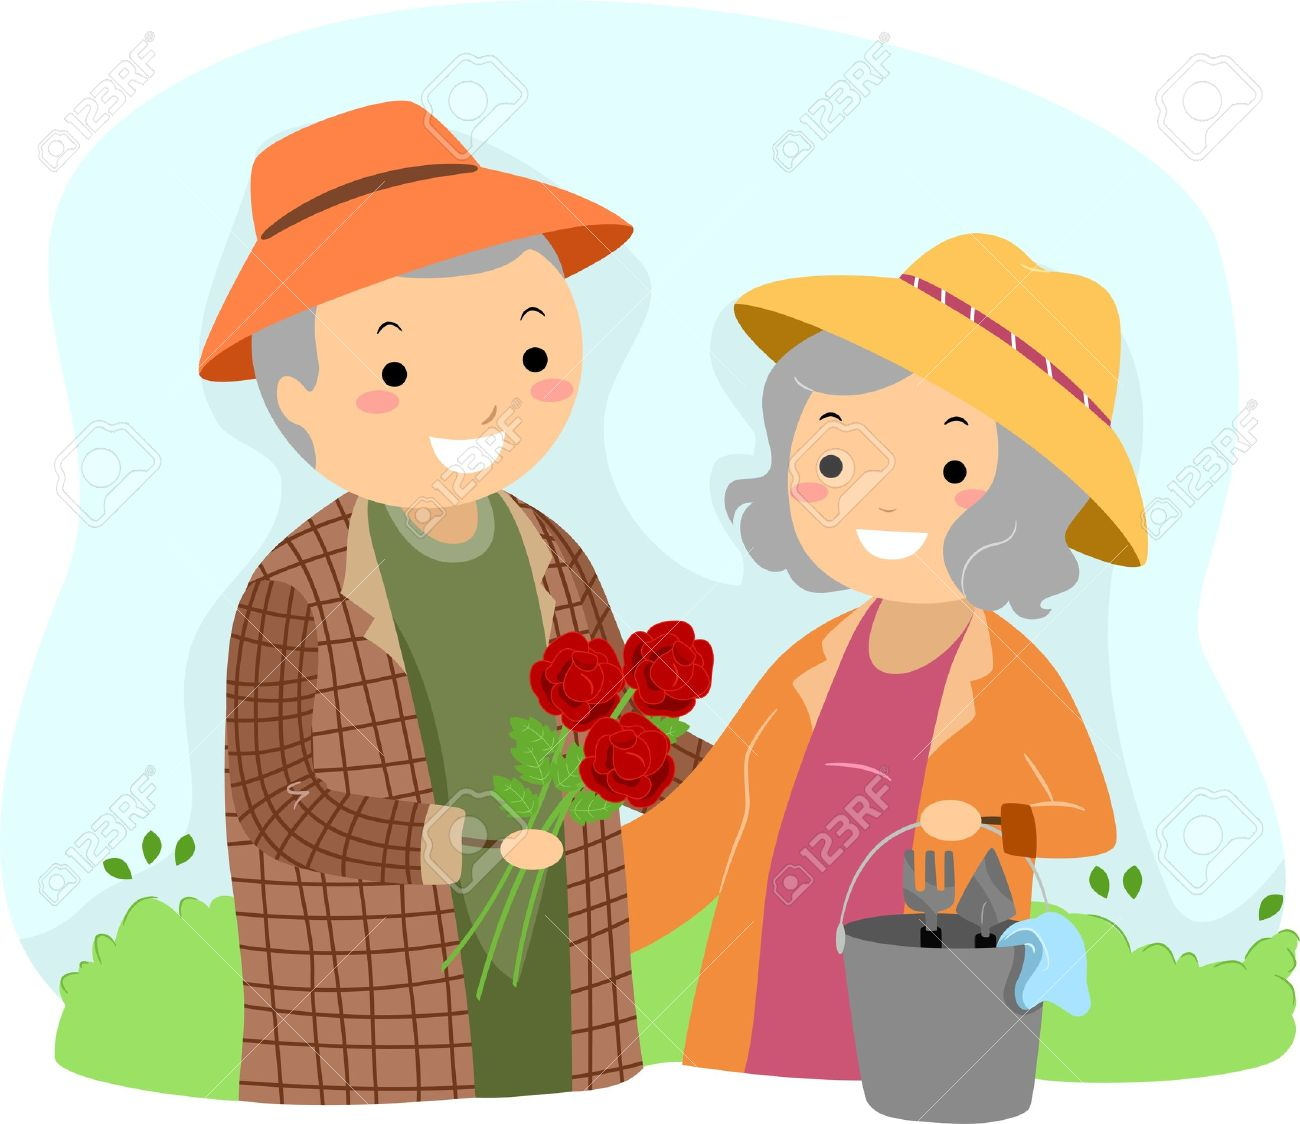 Illustration of Stickman Senior Couple Gardening Stock Illustration - 17871749